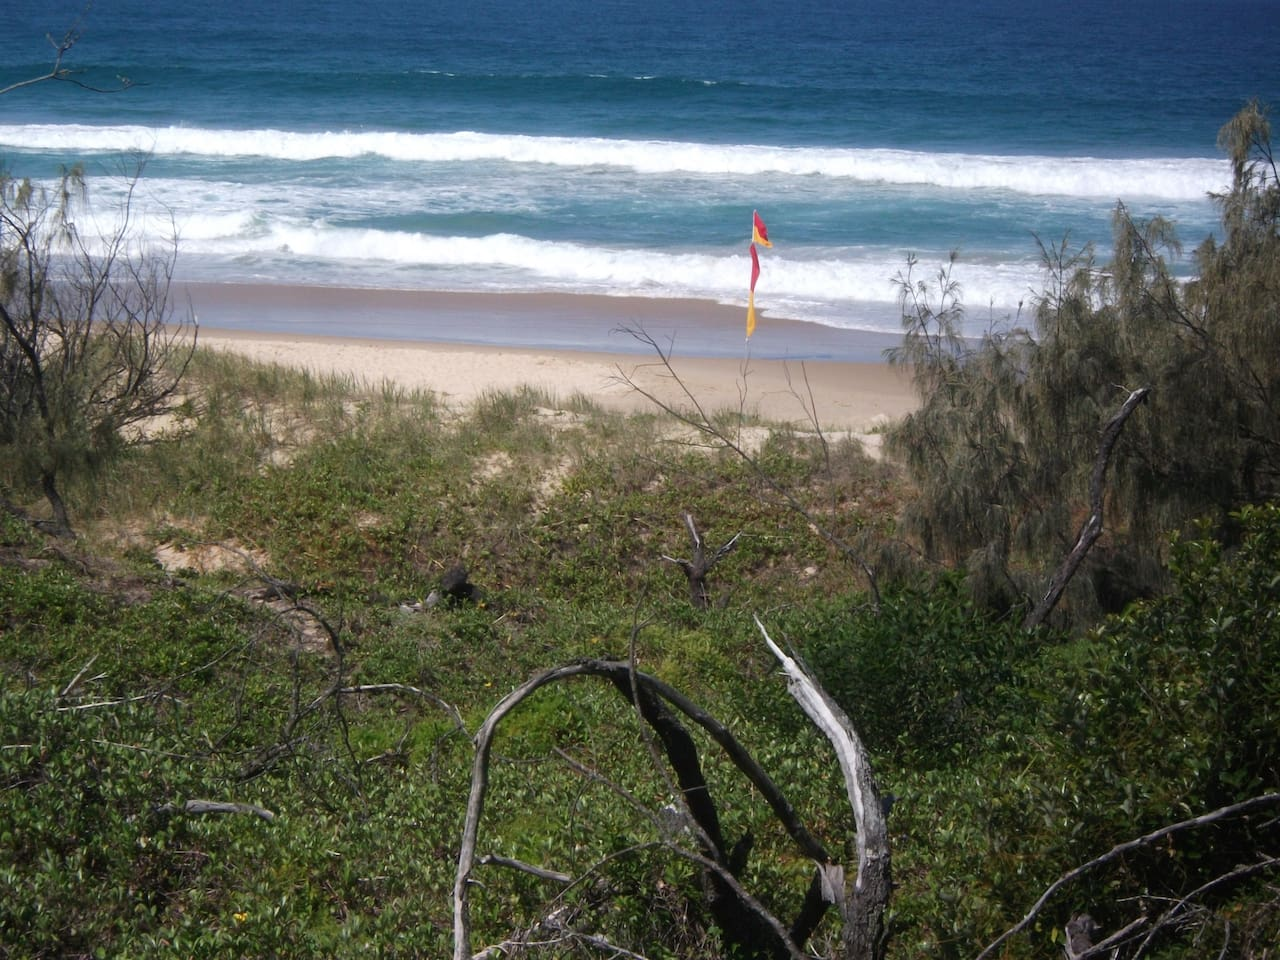 The beach, just 4 minutes away from the front door.